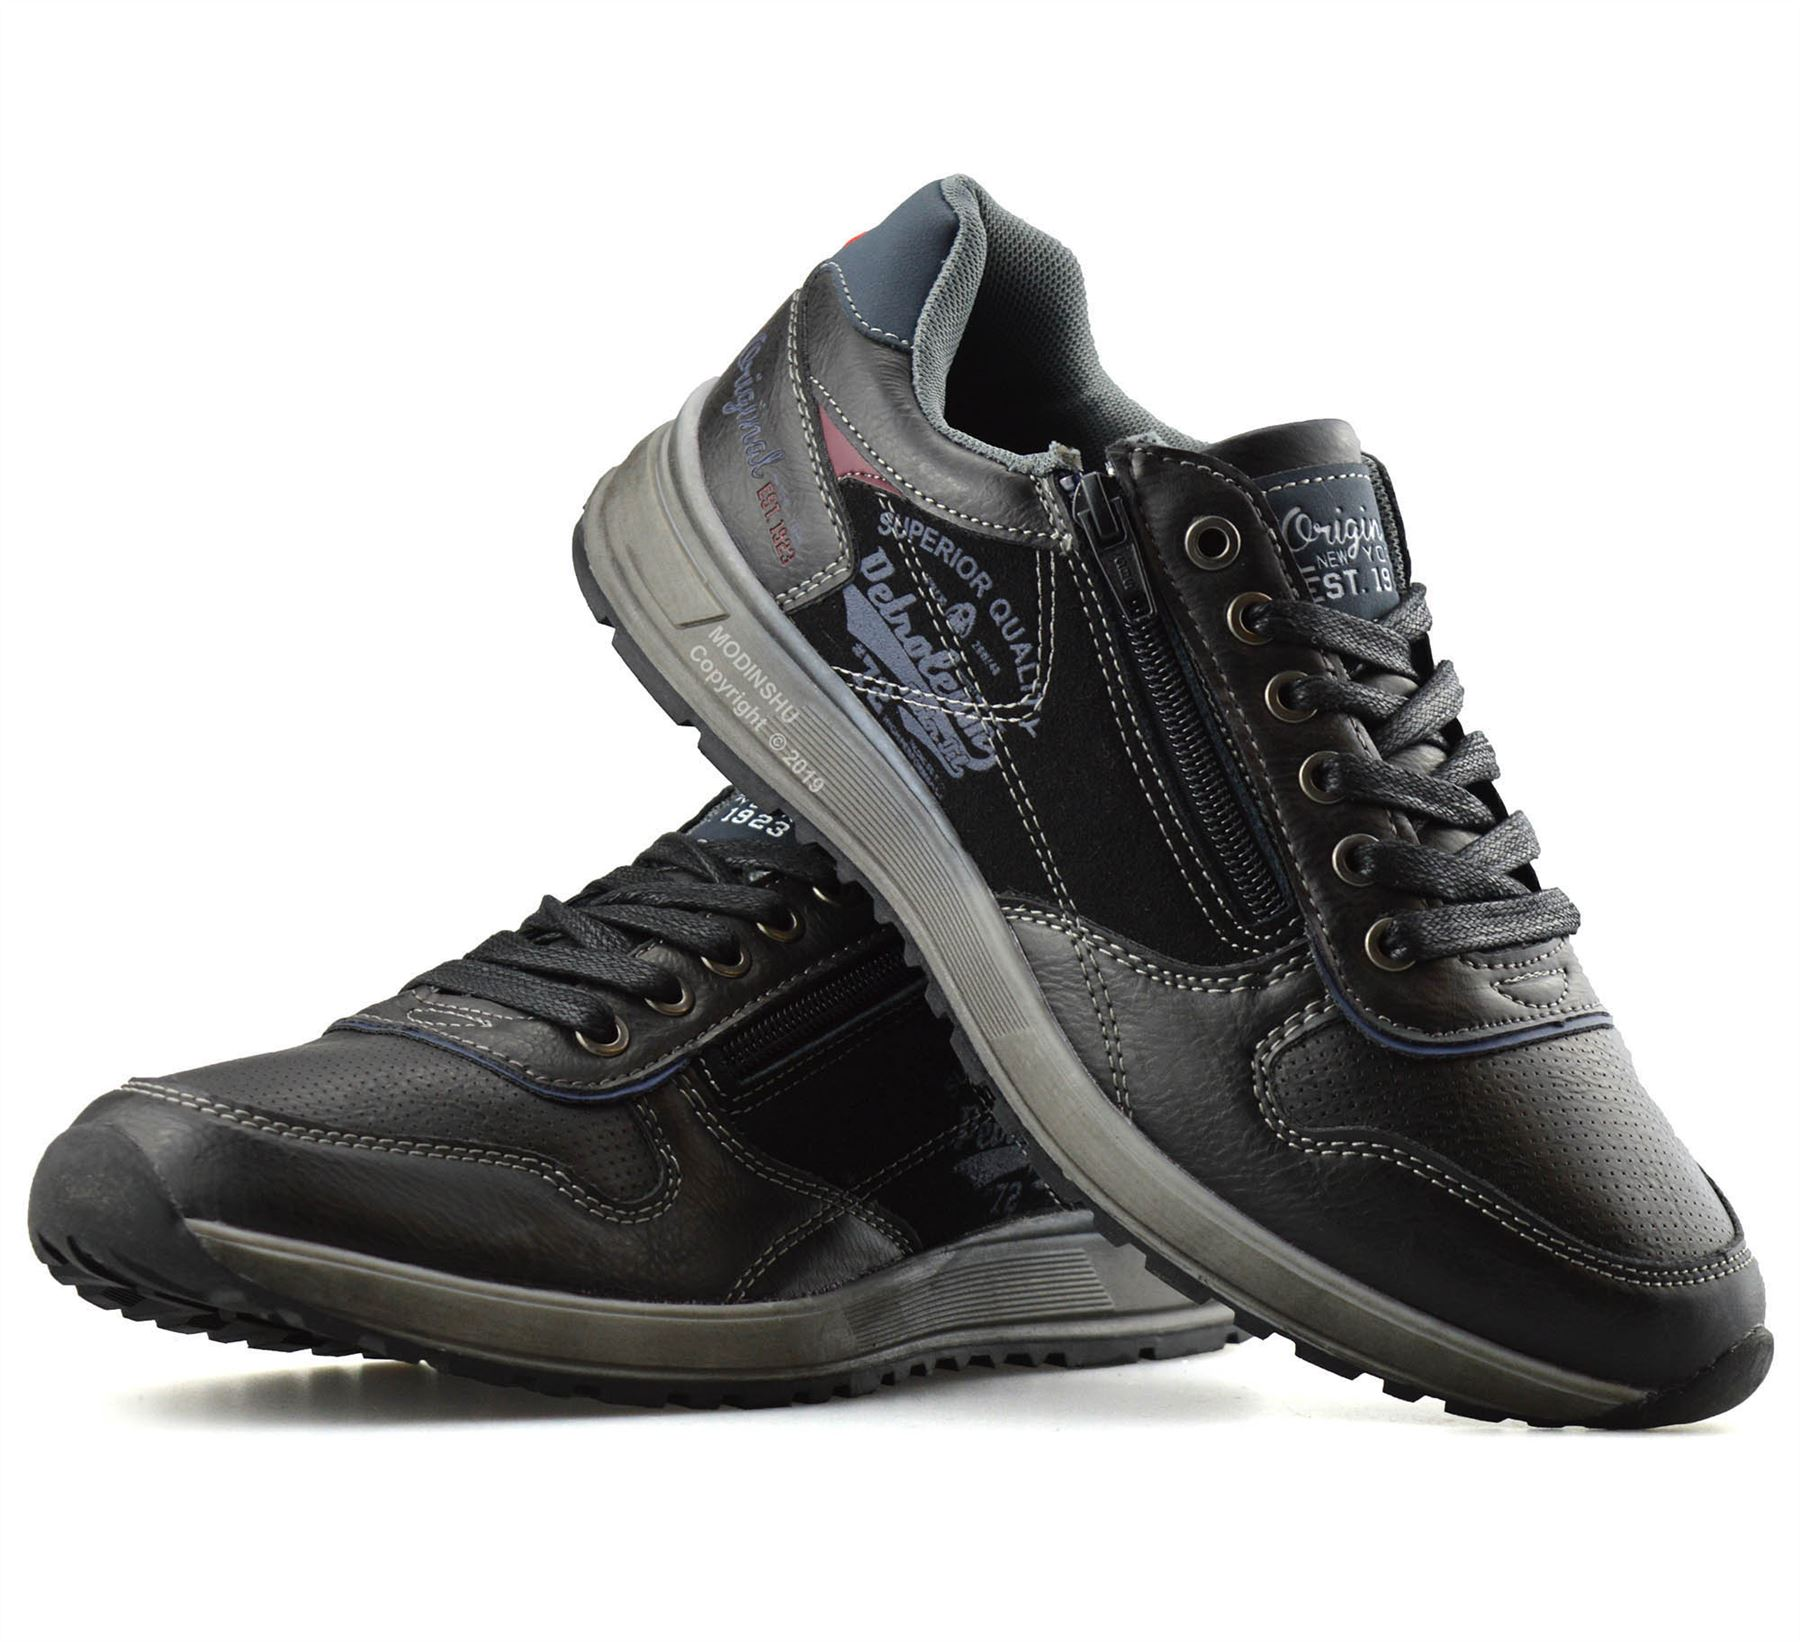 Mens-Casual-Zip-Lace-Up-Walking-Running-Hiking-Sports-Gym-Trainers-Shoes-Size thumbnail 12